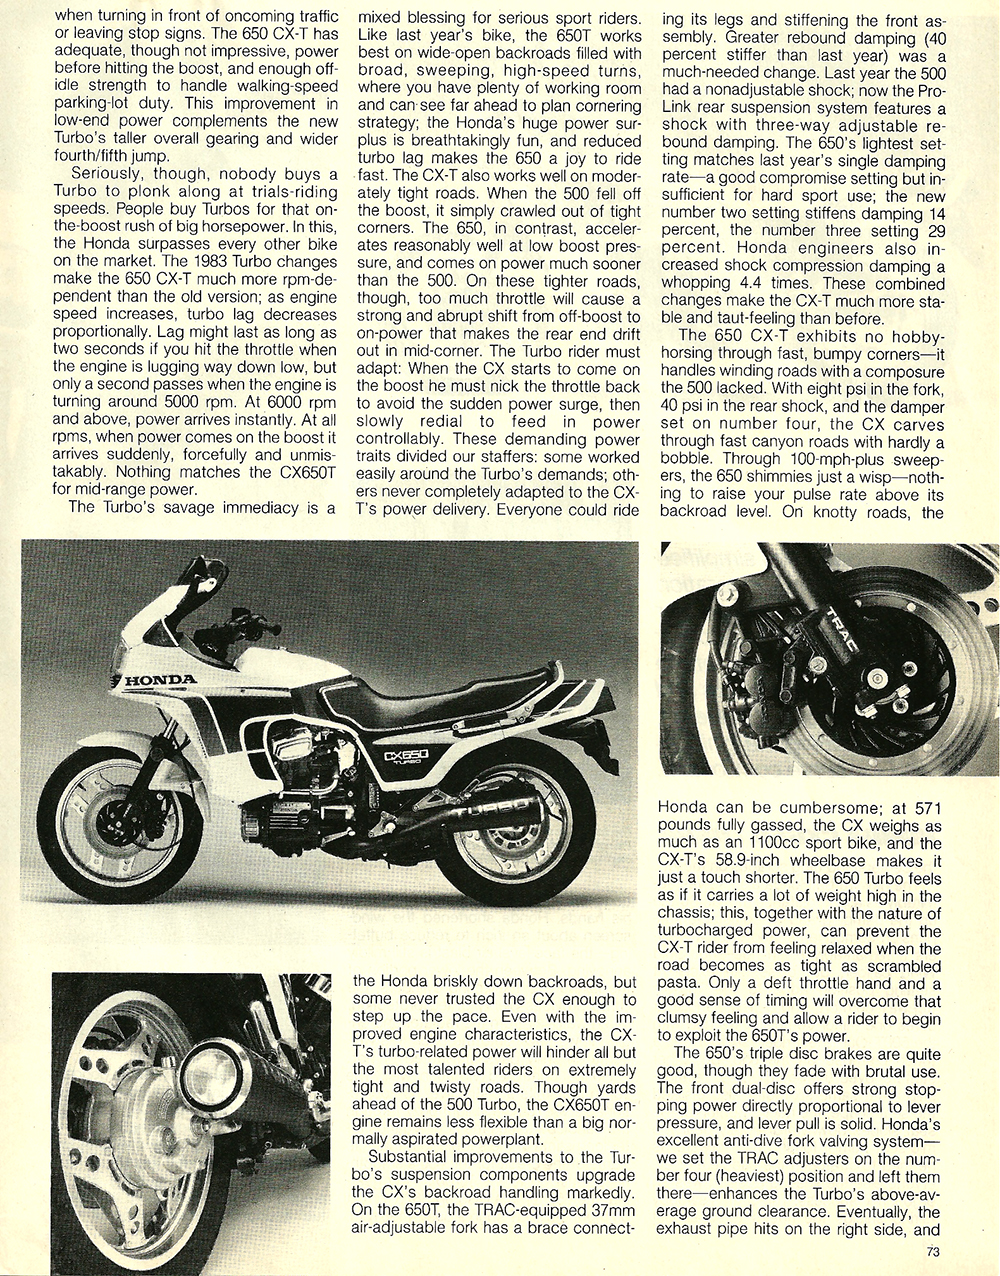 1983 Honda CX650 turbo road test 4.jpg